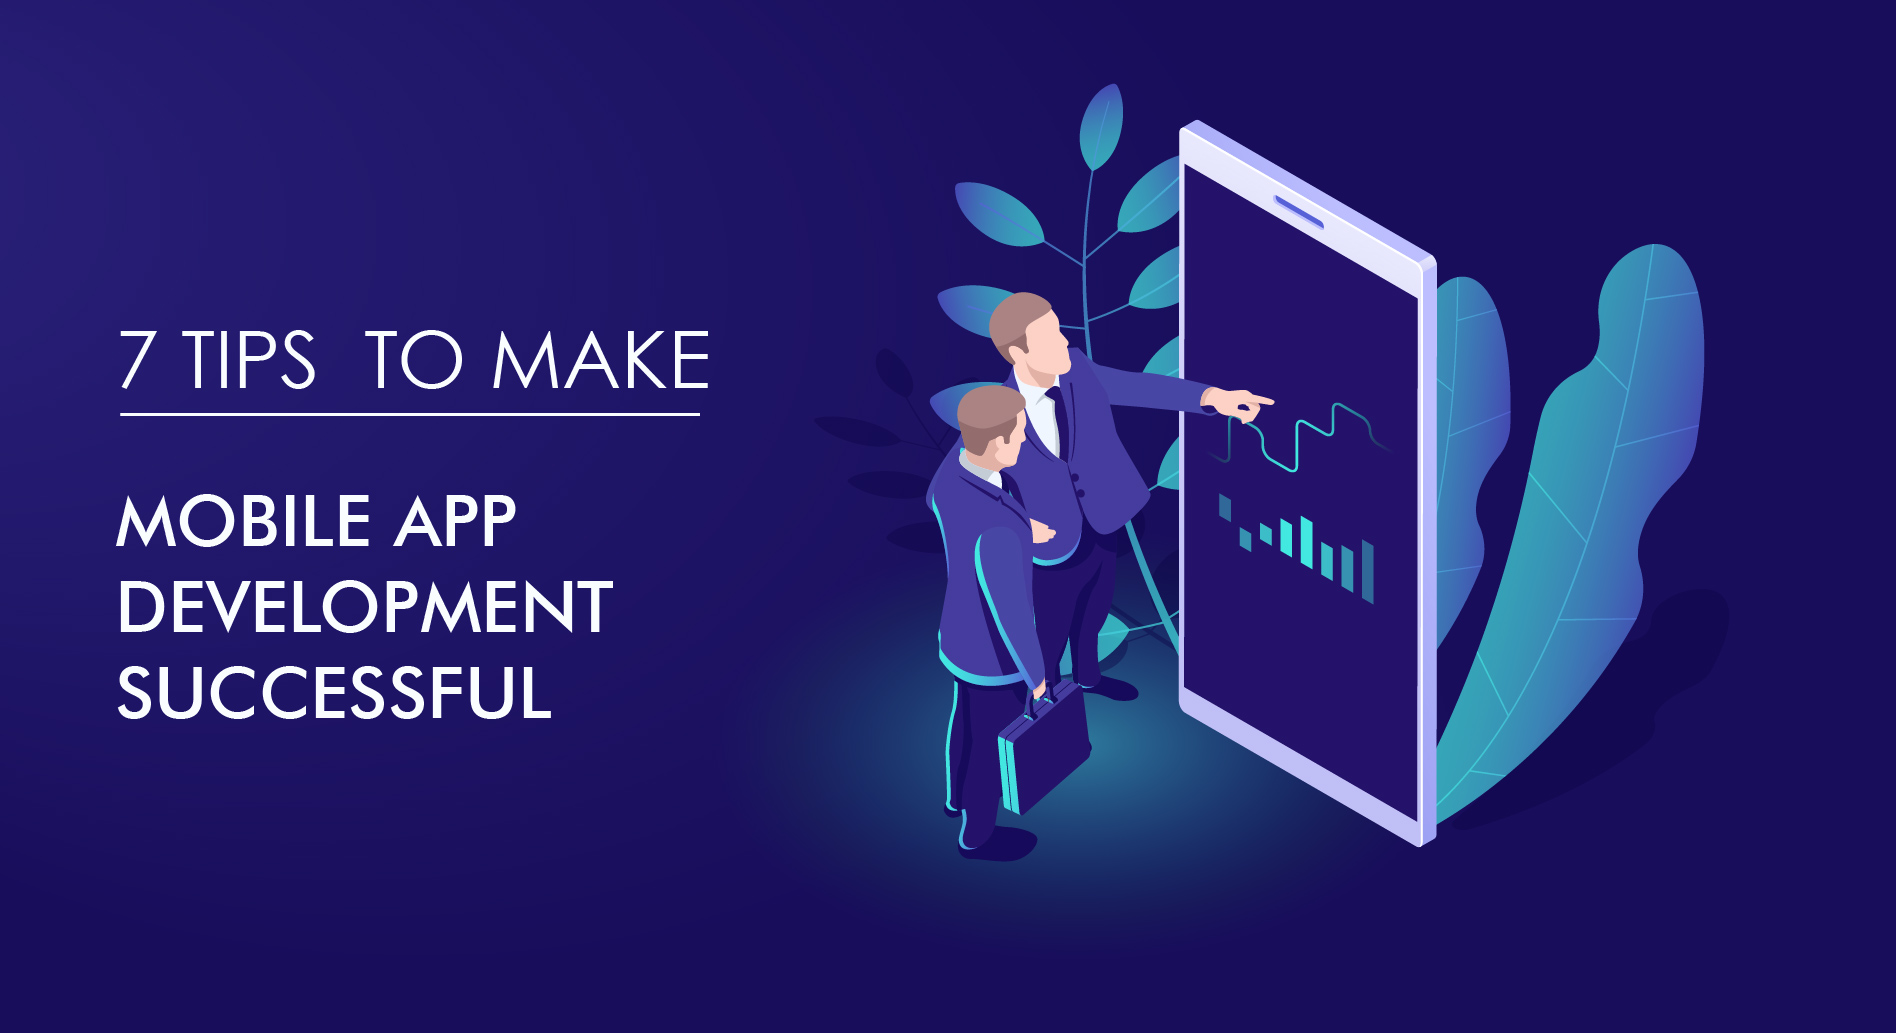 7 Tips To Make Mobile App Development Successful